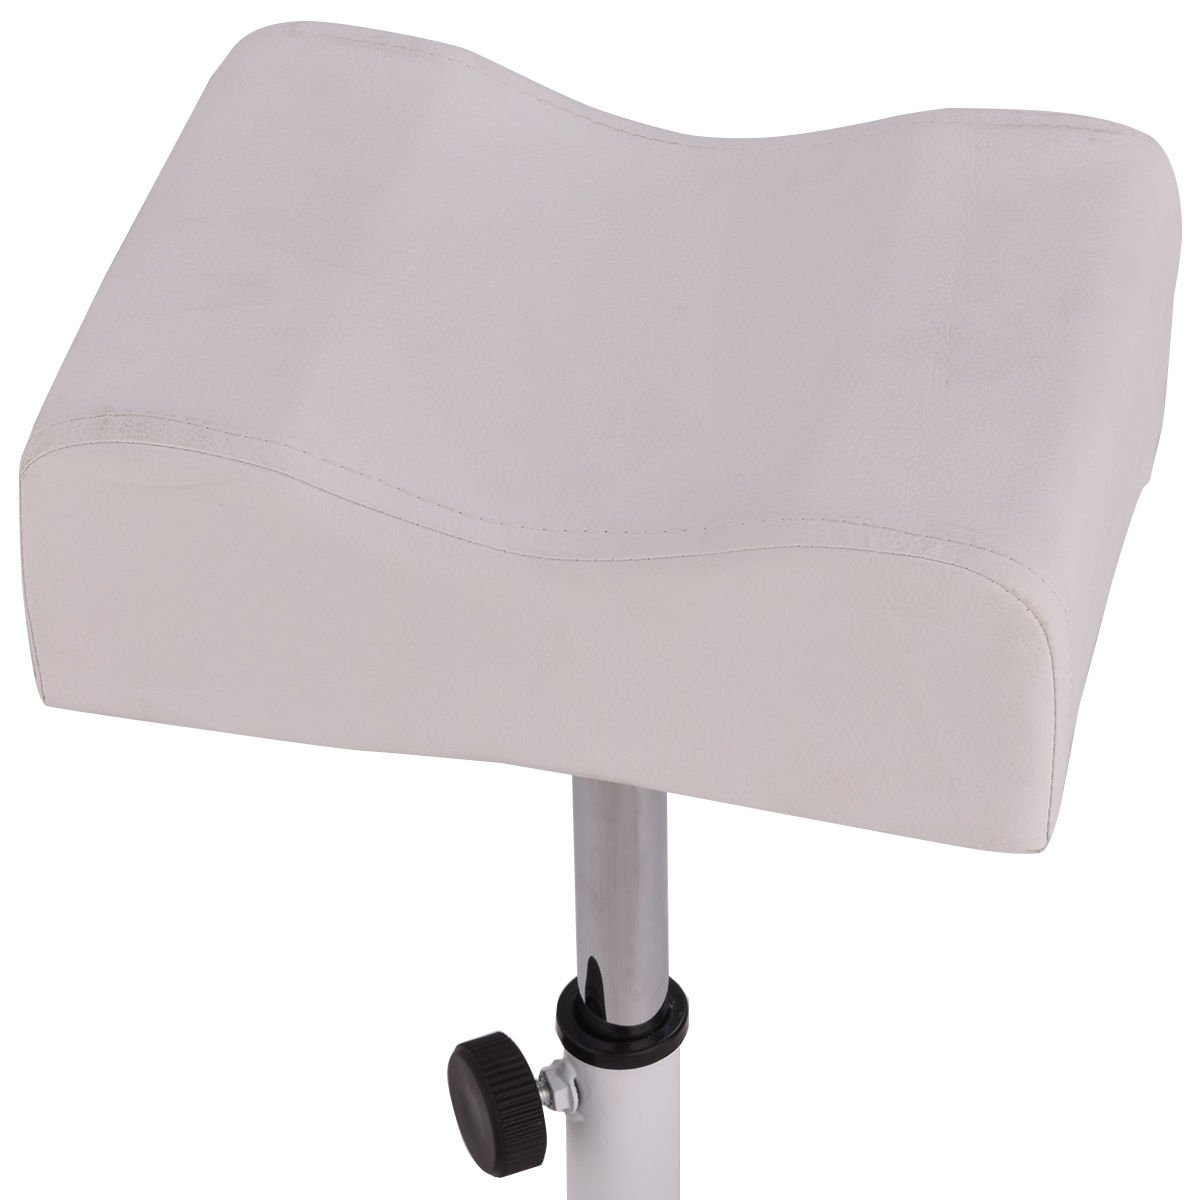 Simply Silver - Adjustable Pedicure - White Adjustable Pedicure Manicure Technician Nail Footrest Salon Spa Equipment by Simply Silver (Image #6)